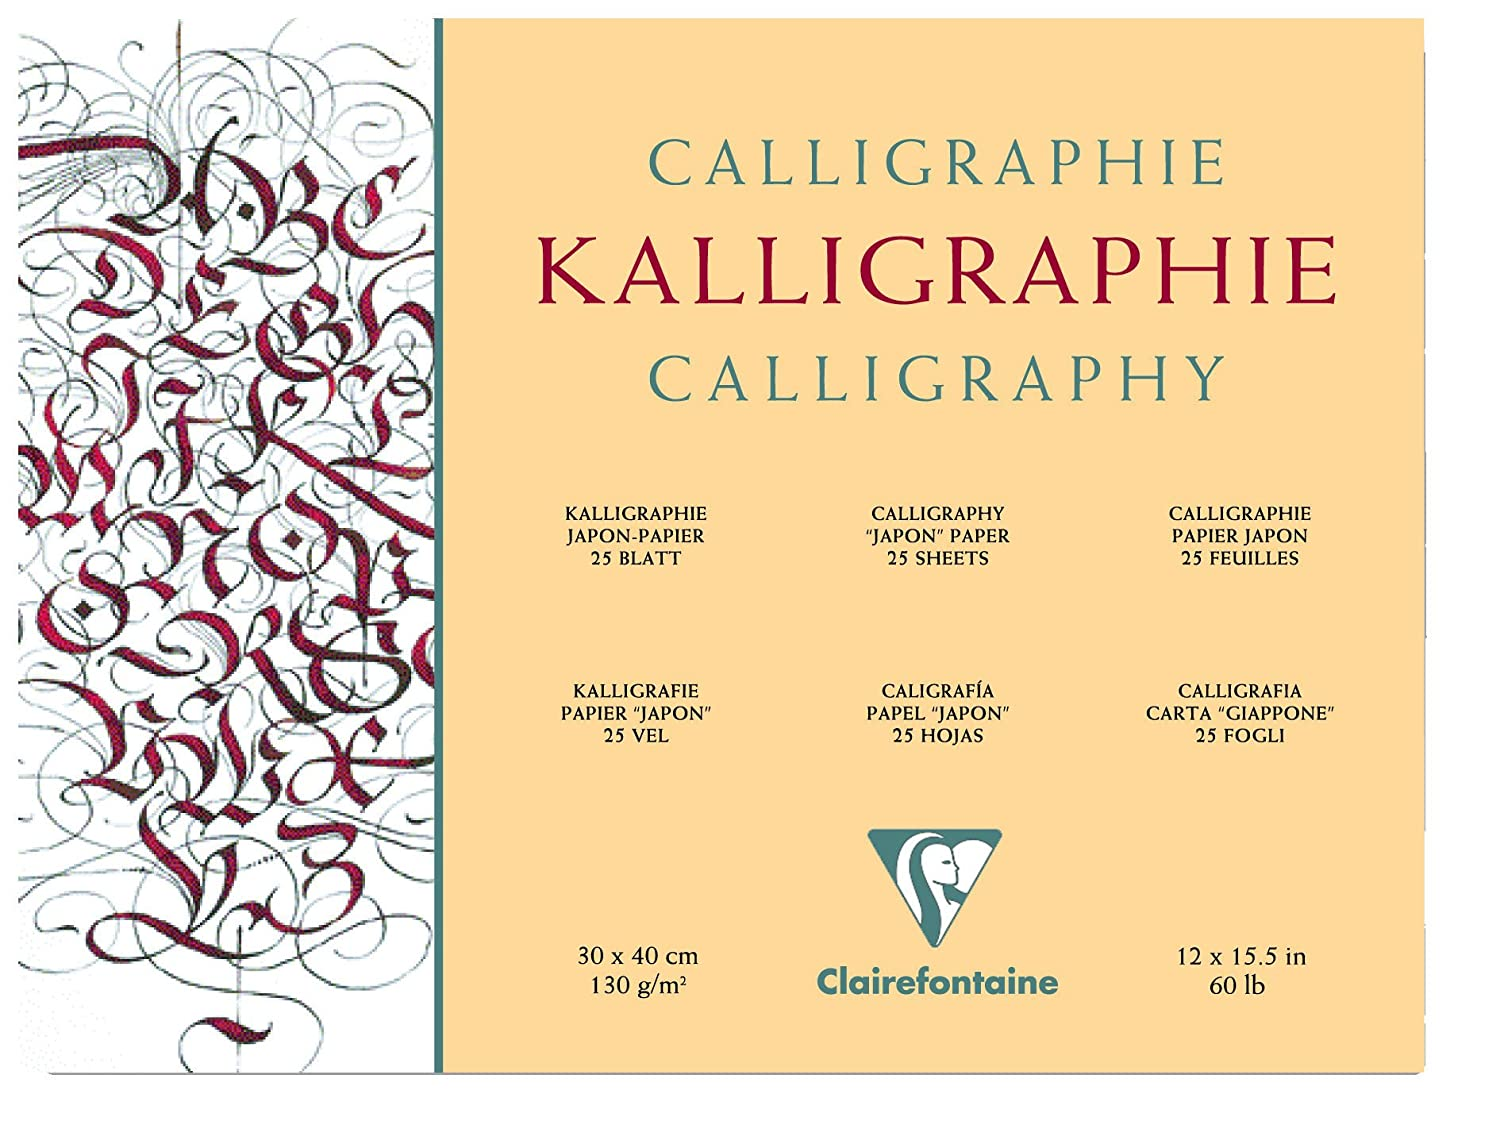 Clairefontaine 24 x 30 cm Calligraphy Pad, 130 g, 25 Sheets 96439C